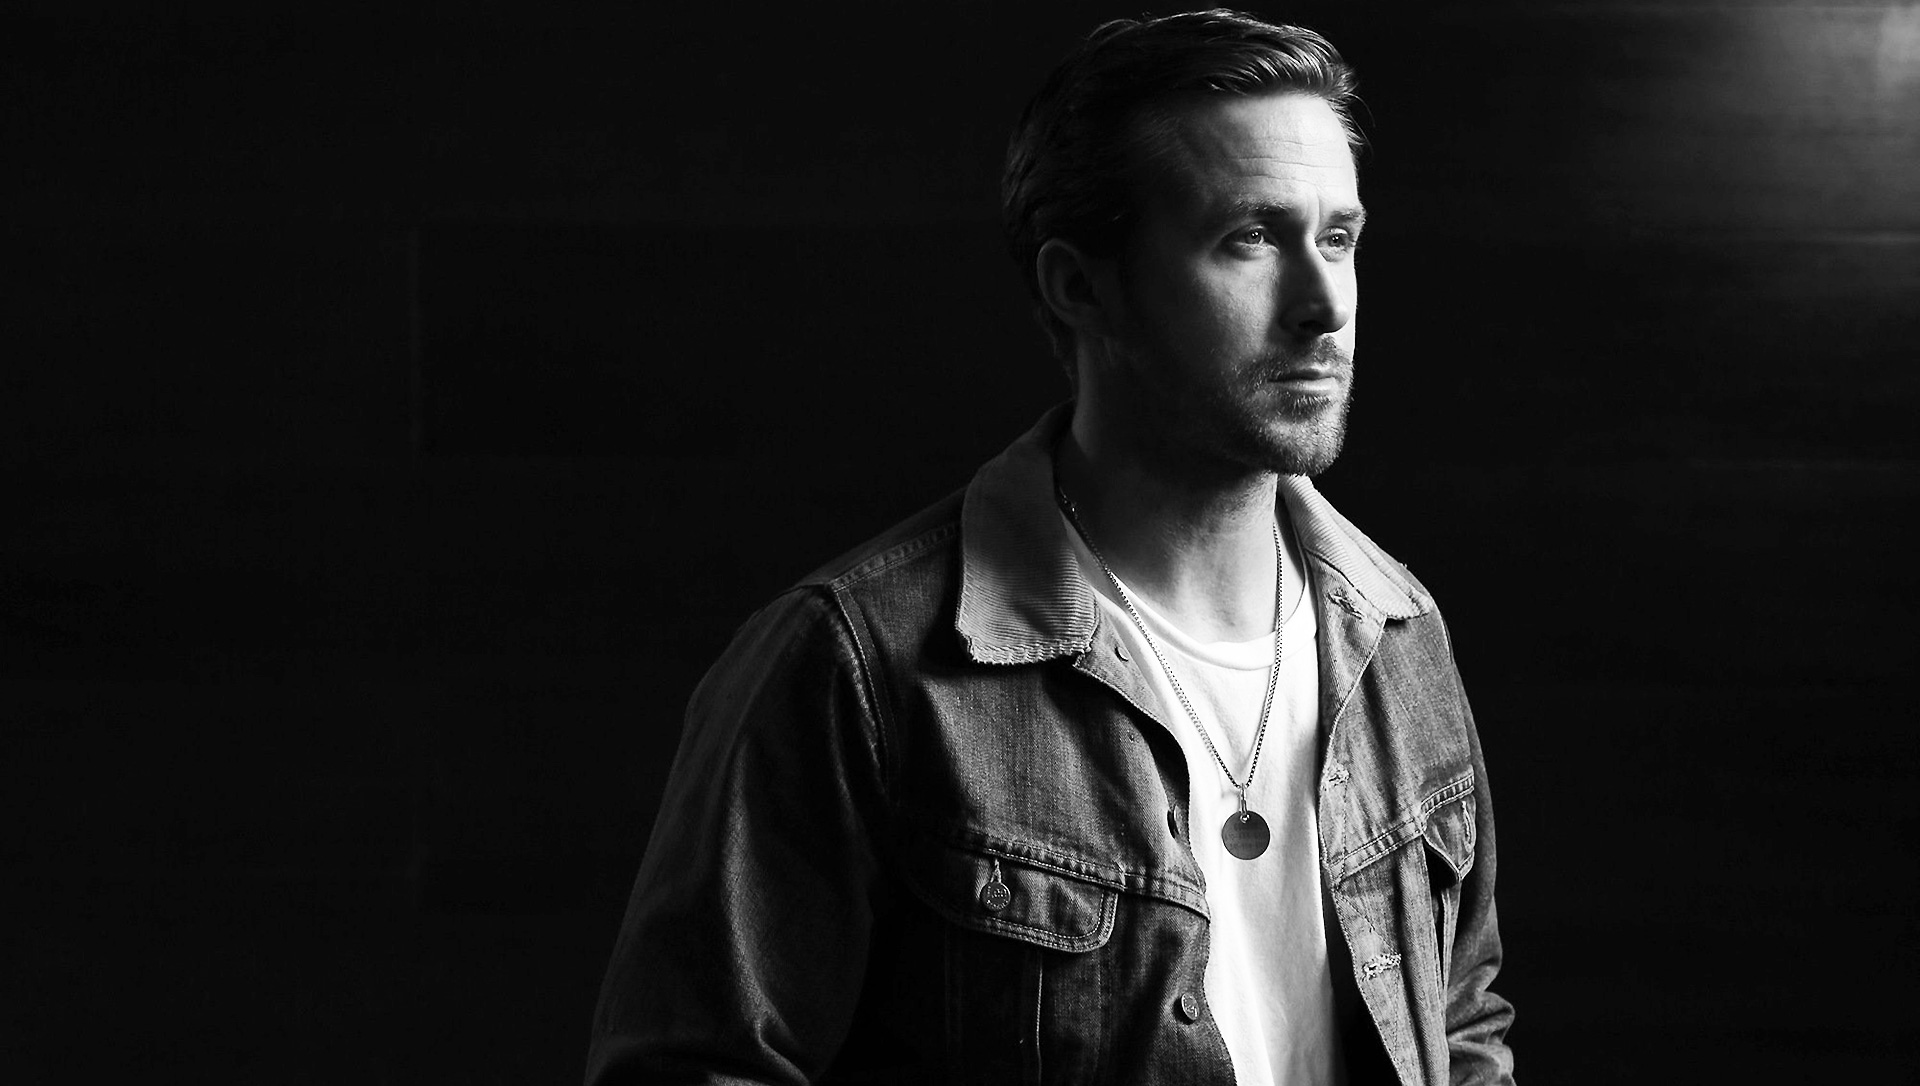 Ryan Gosling is the Future